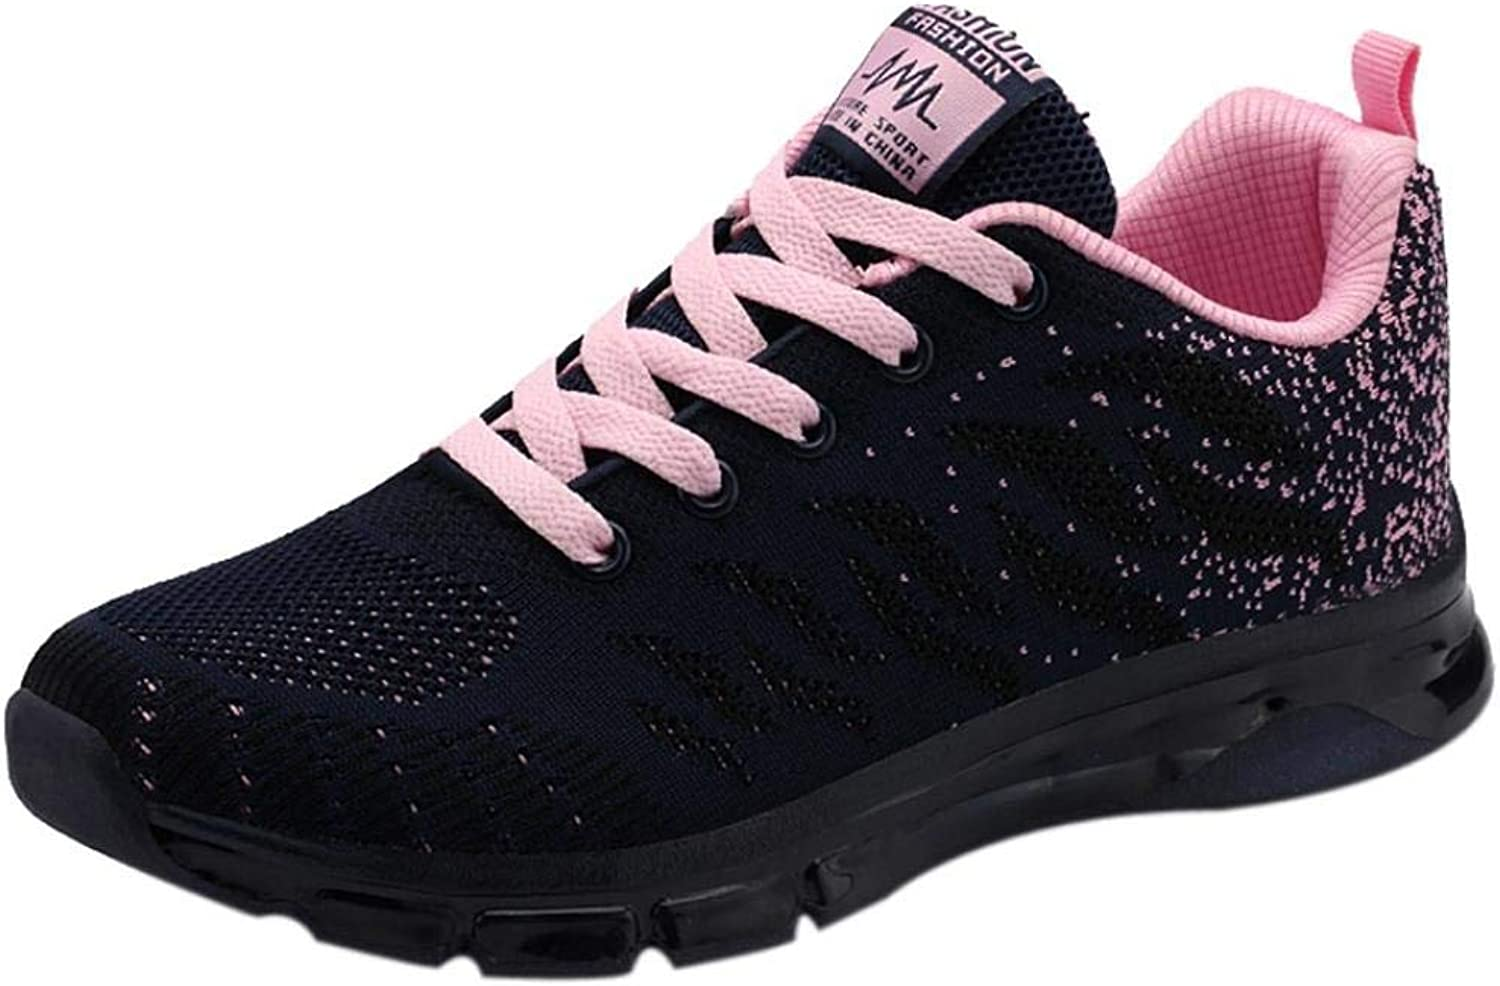 JaHGDU Flying Woven shoes Sport Air Cushion Sneakers Student Net Running shoes Fashion Leisure Soft Wild Tight Super Quality for Womens